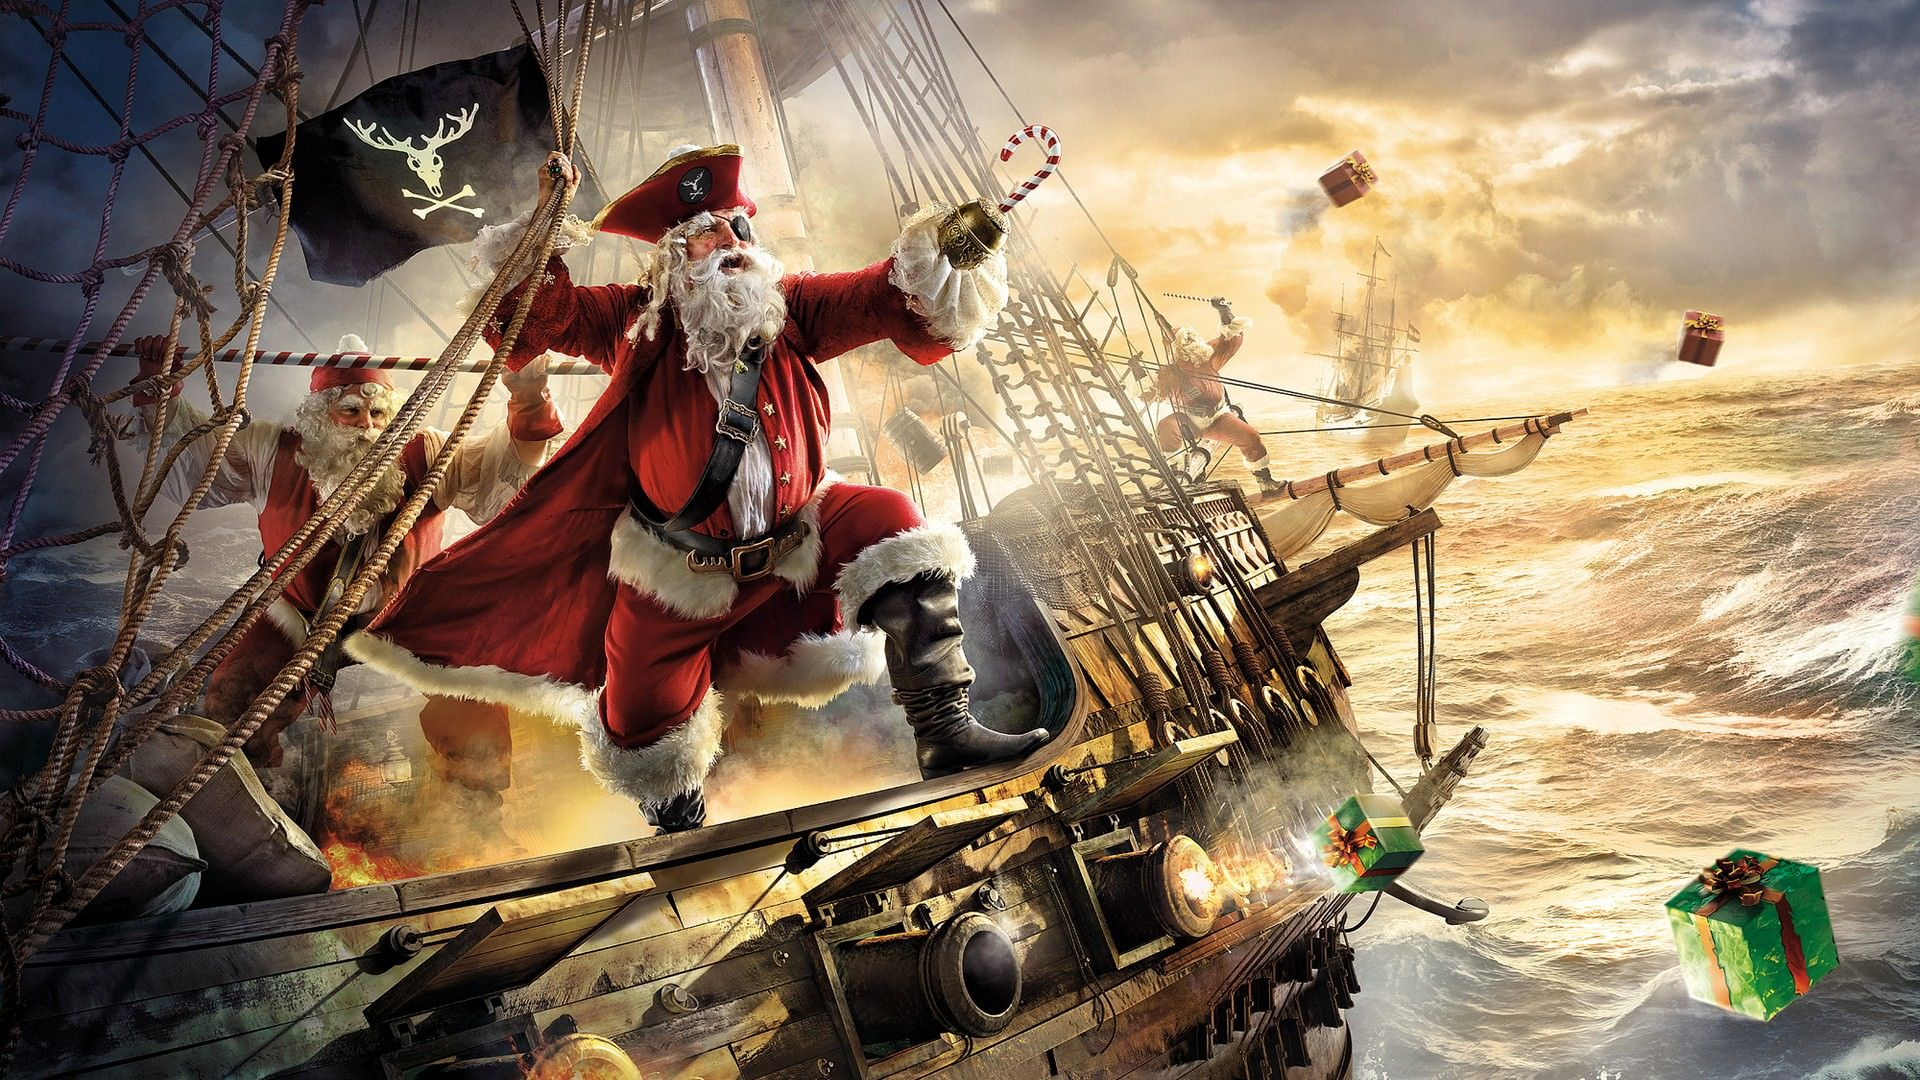 1920x1080 Epic Pirate Santa Clause Christmas Wallpaper | DigitalArt.io